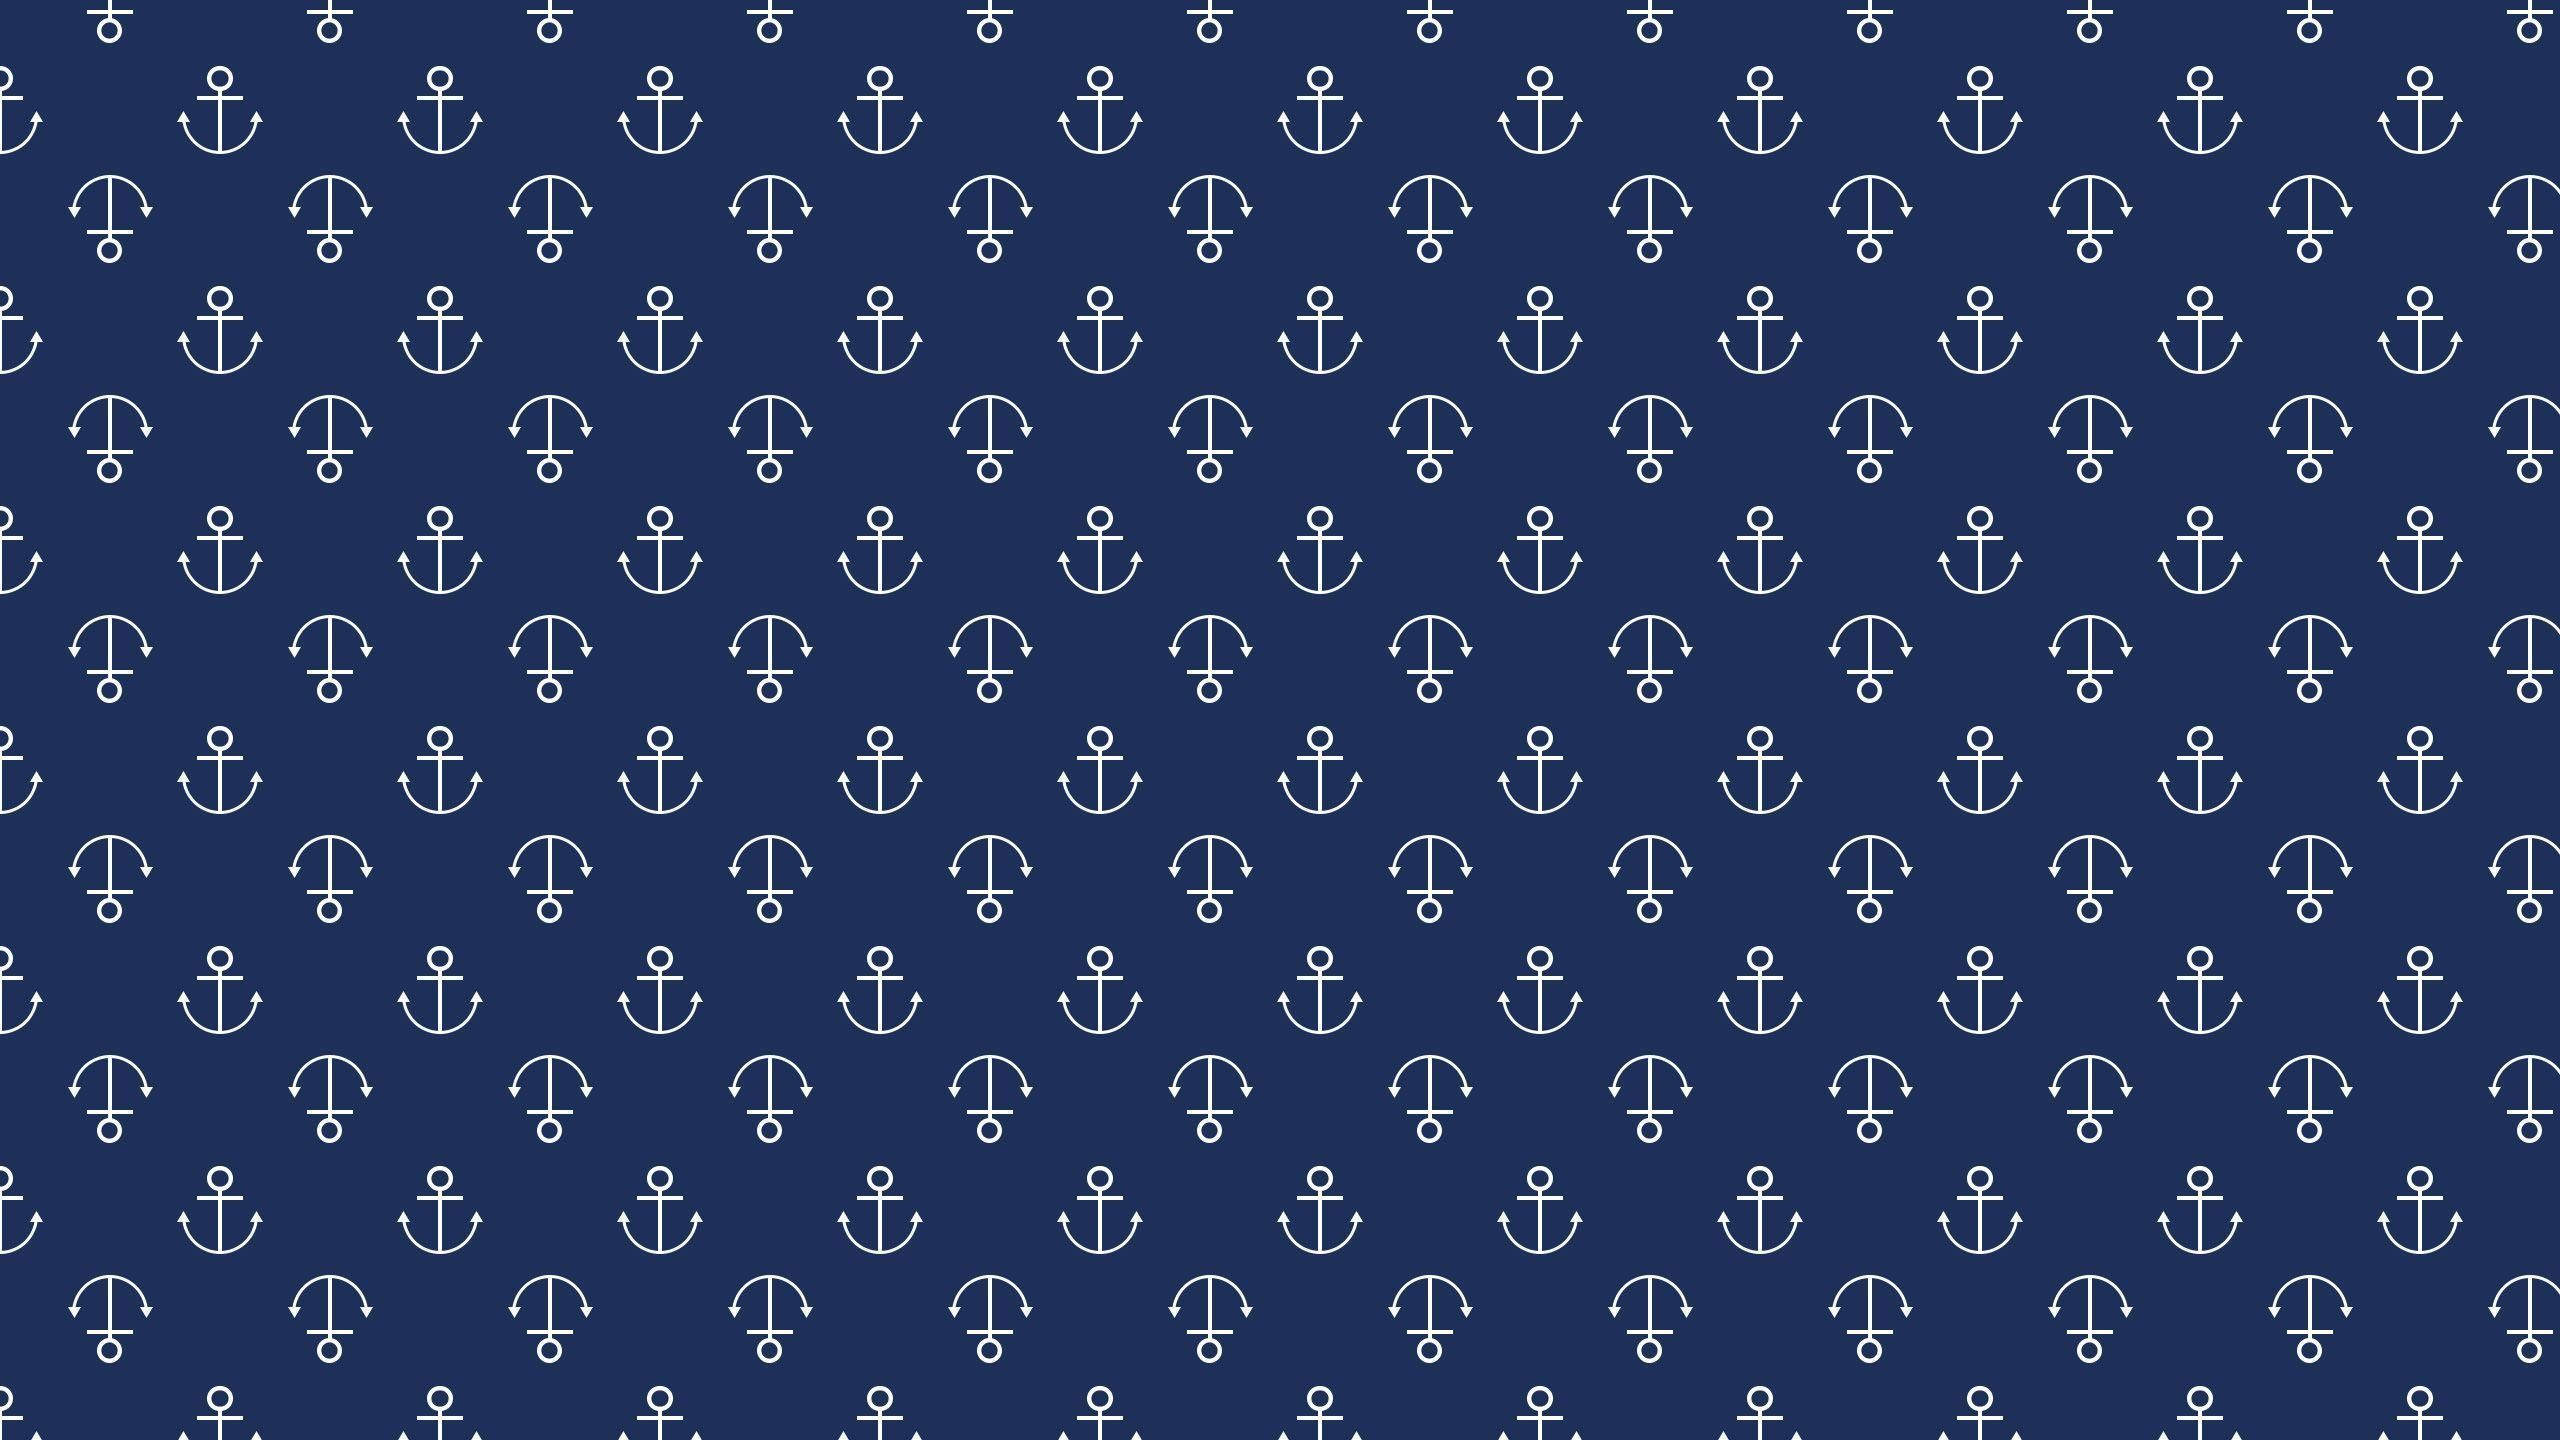 2560x1440 Blue Nautical Wallpaper, Best Blue Nautical Images - Most .